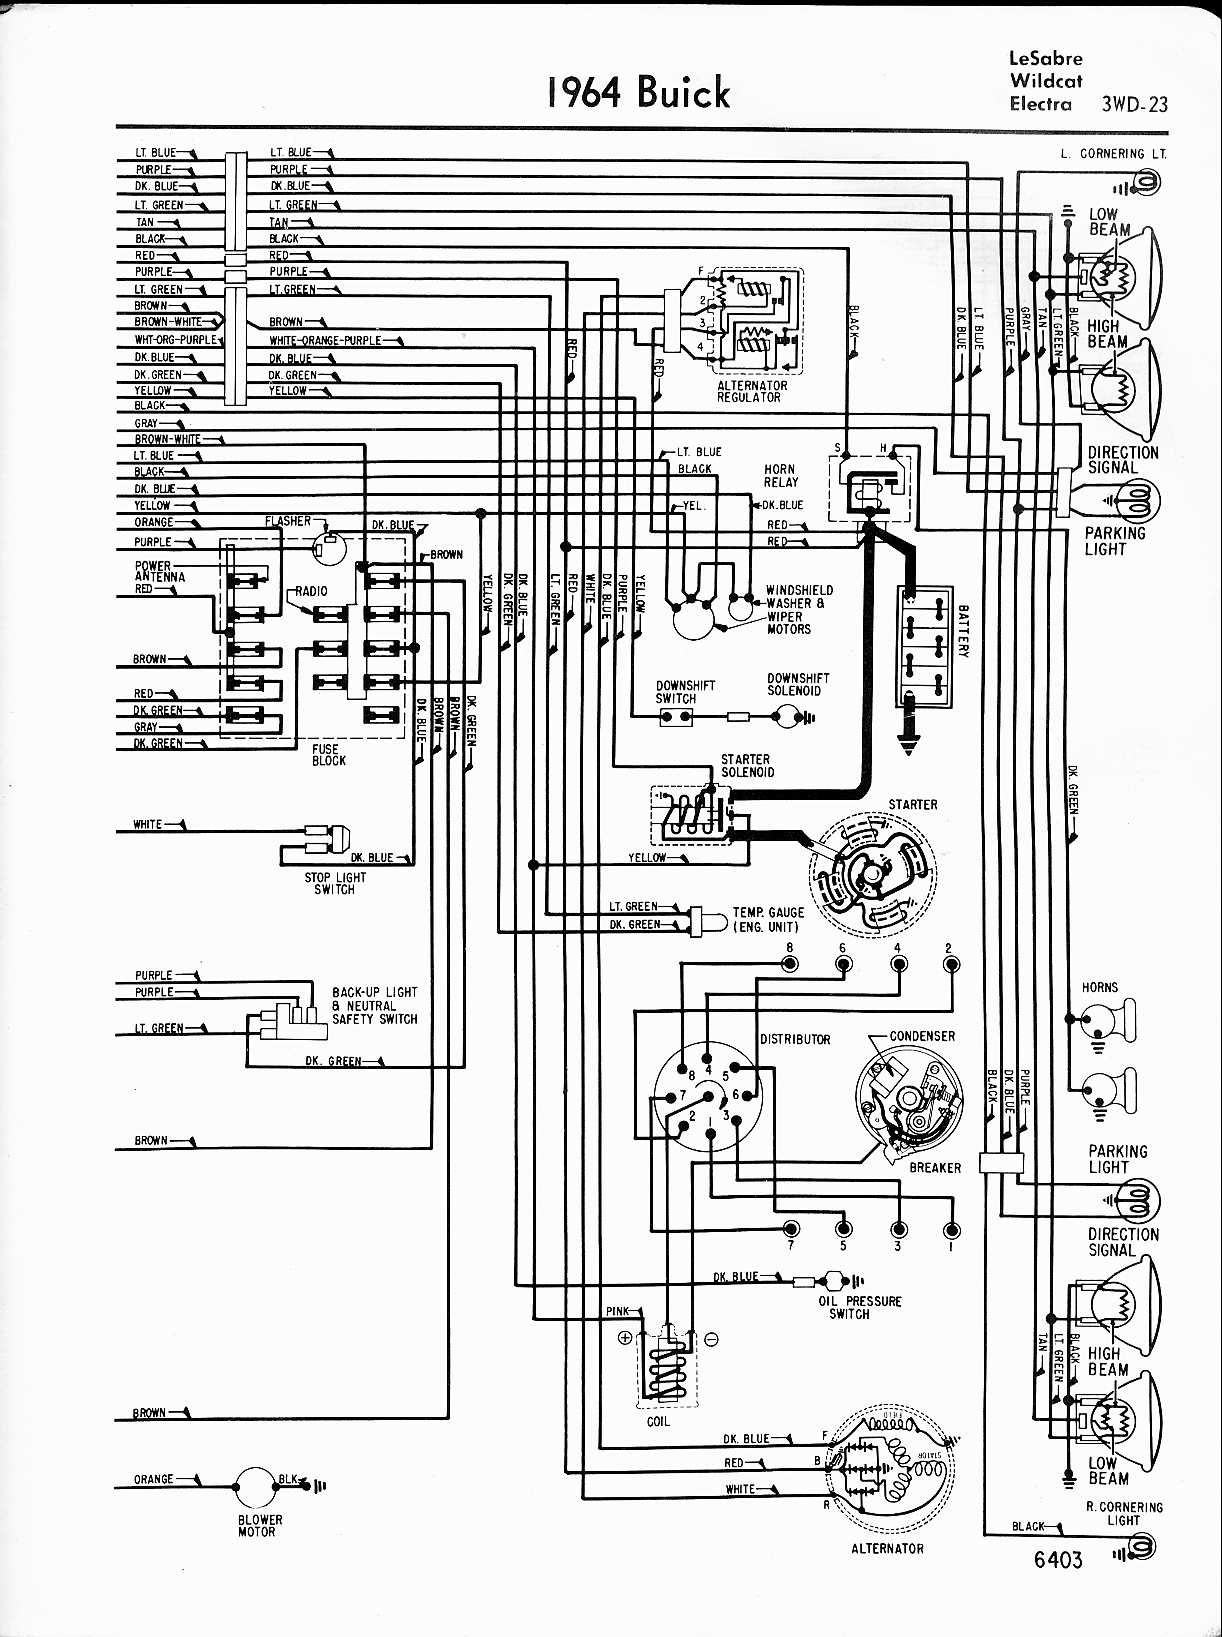 hight resolution of 1960 buick wiring diagram wiring diagram schematics 1998 buick lesabre wiring diagram 2000 buick lesabre wiring diagram model